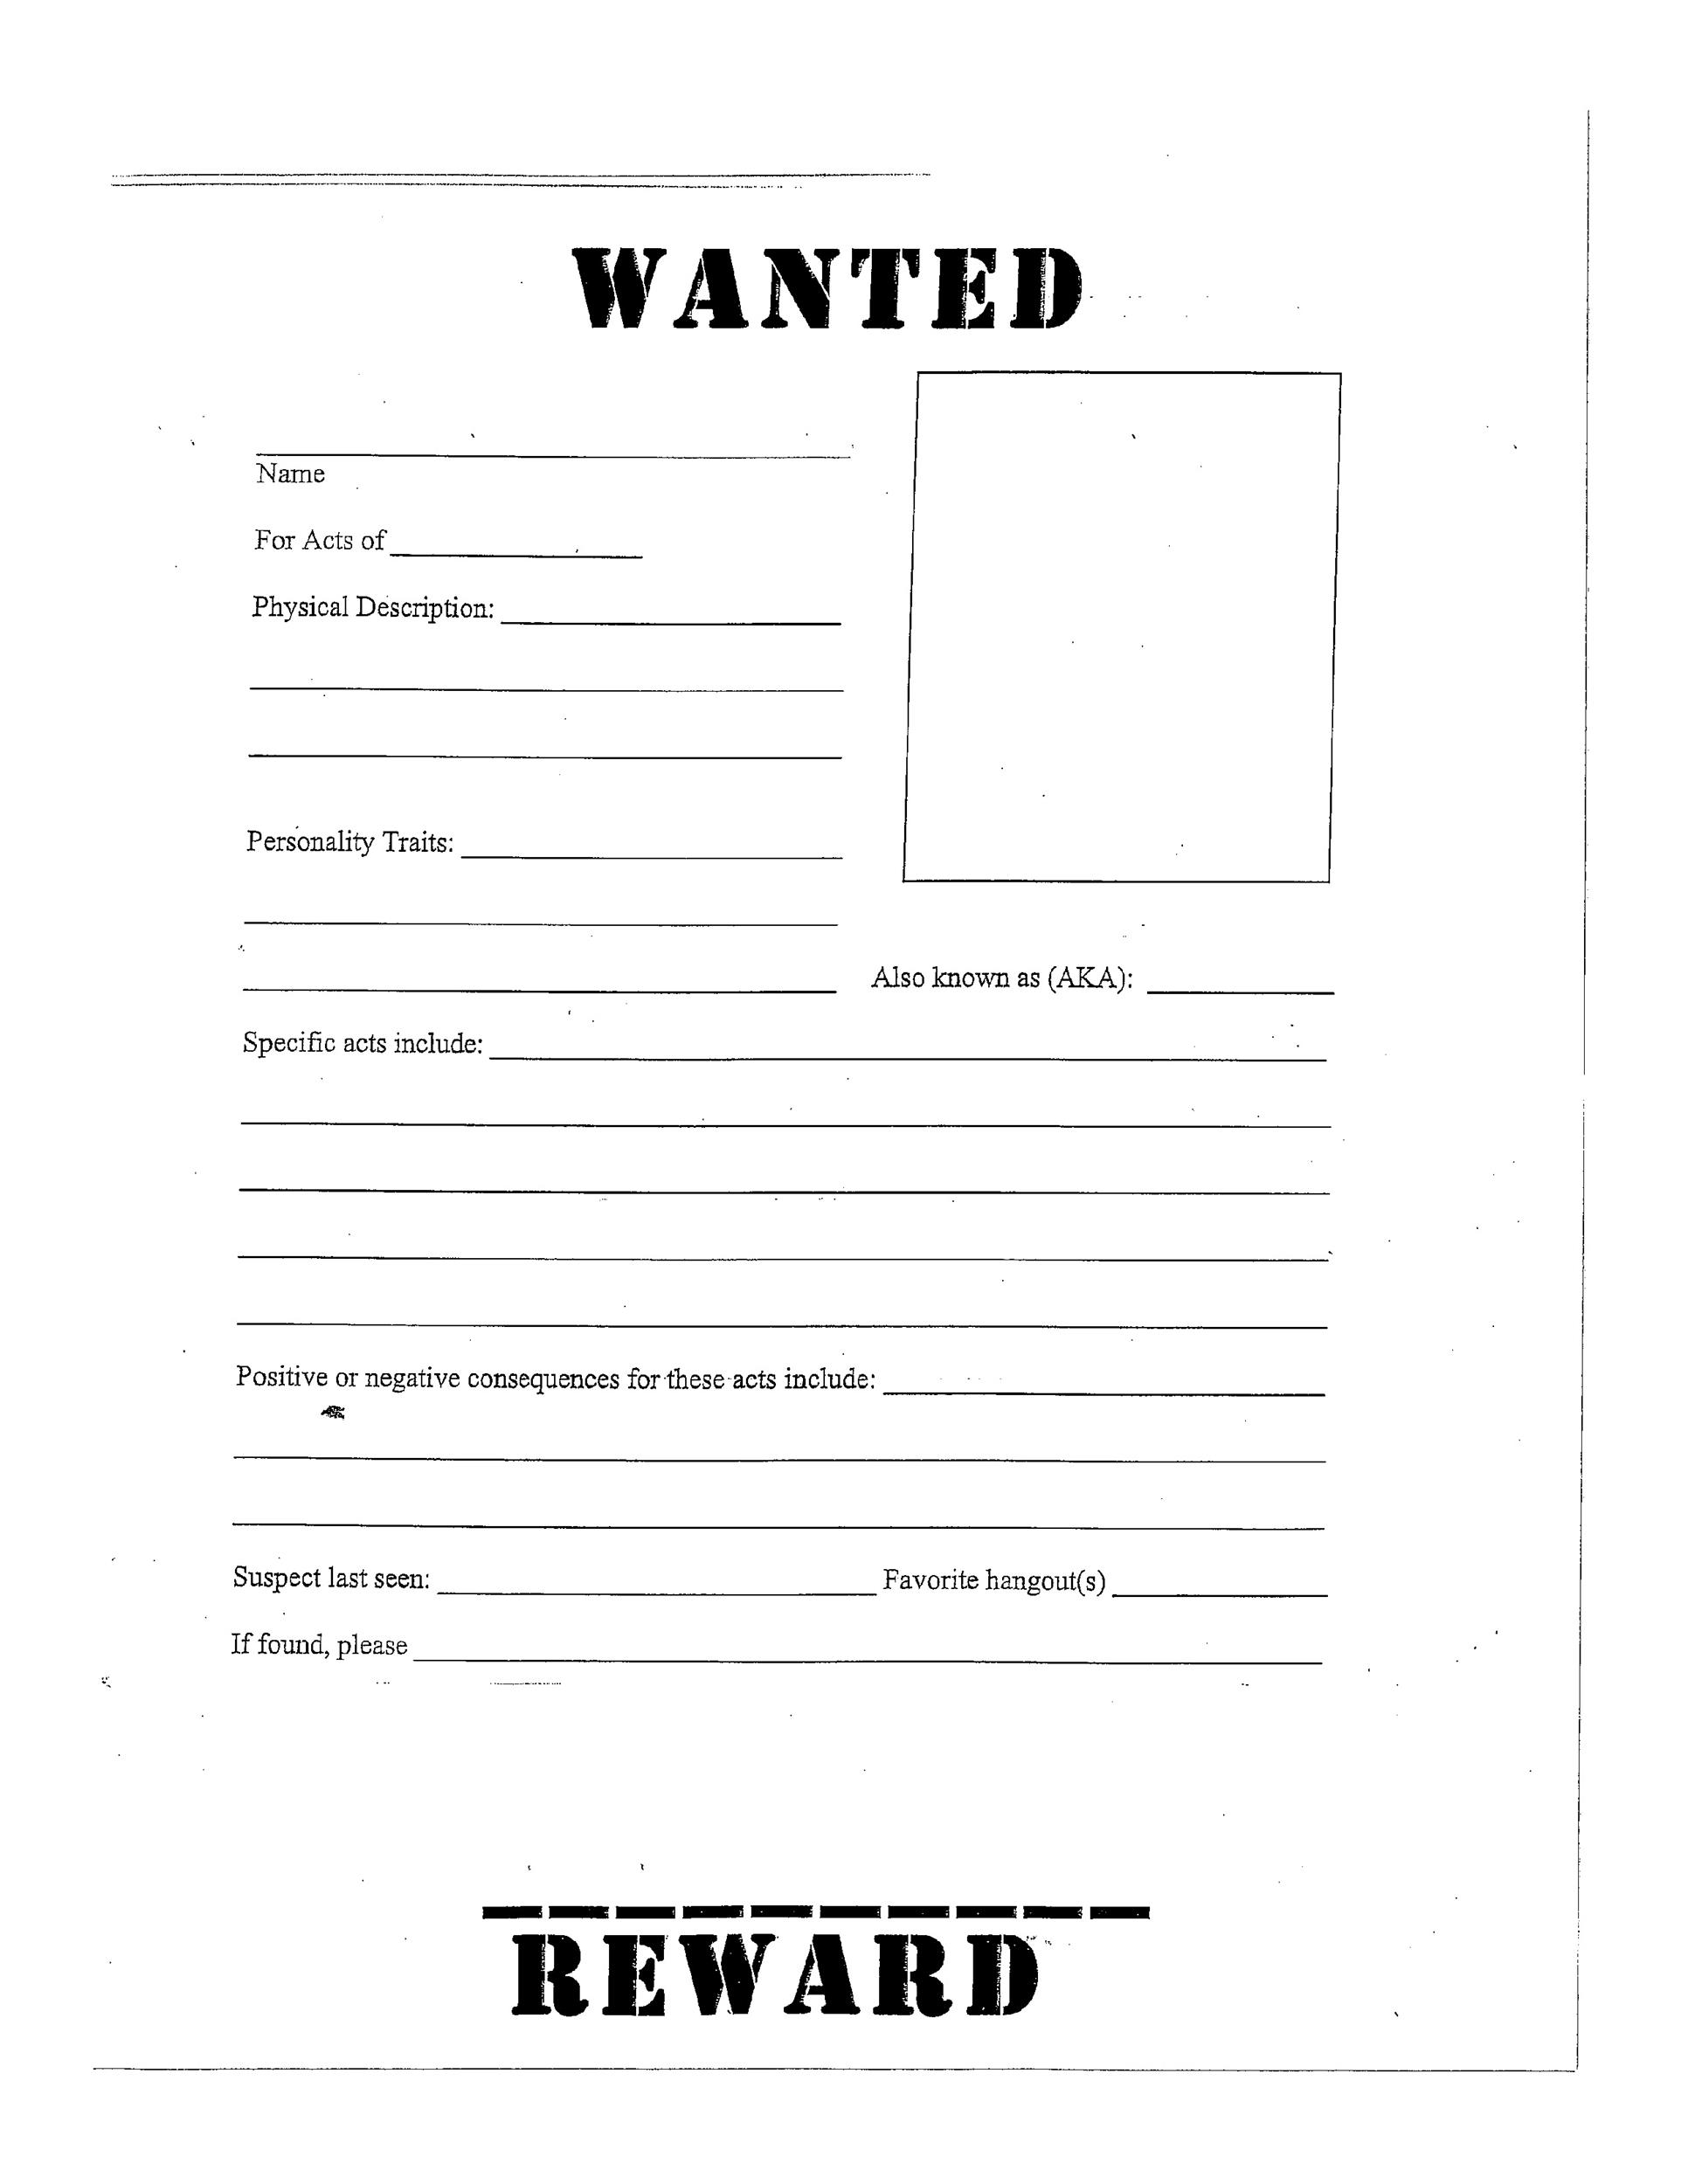 Free Wanted Poster Template 04